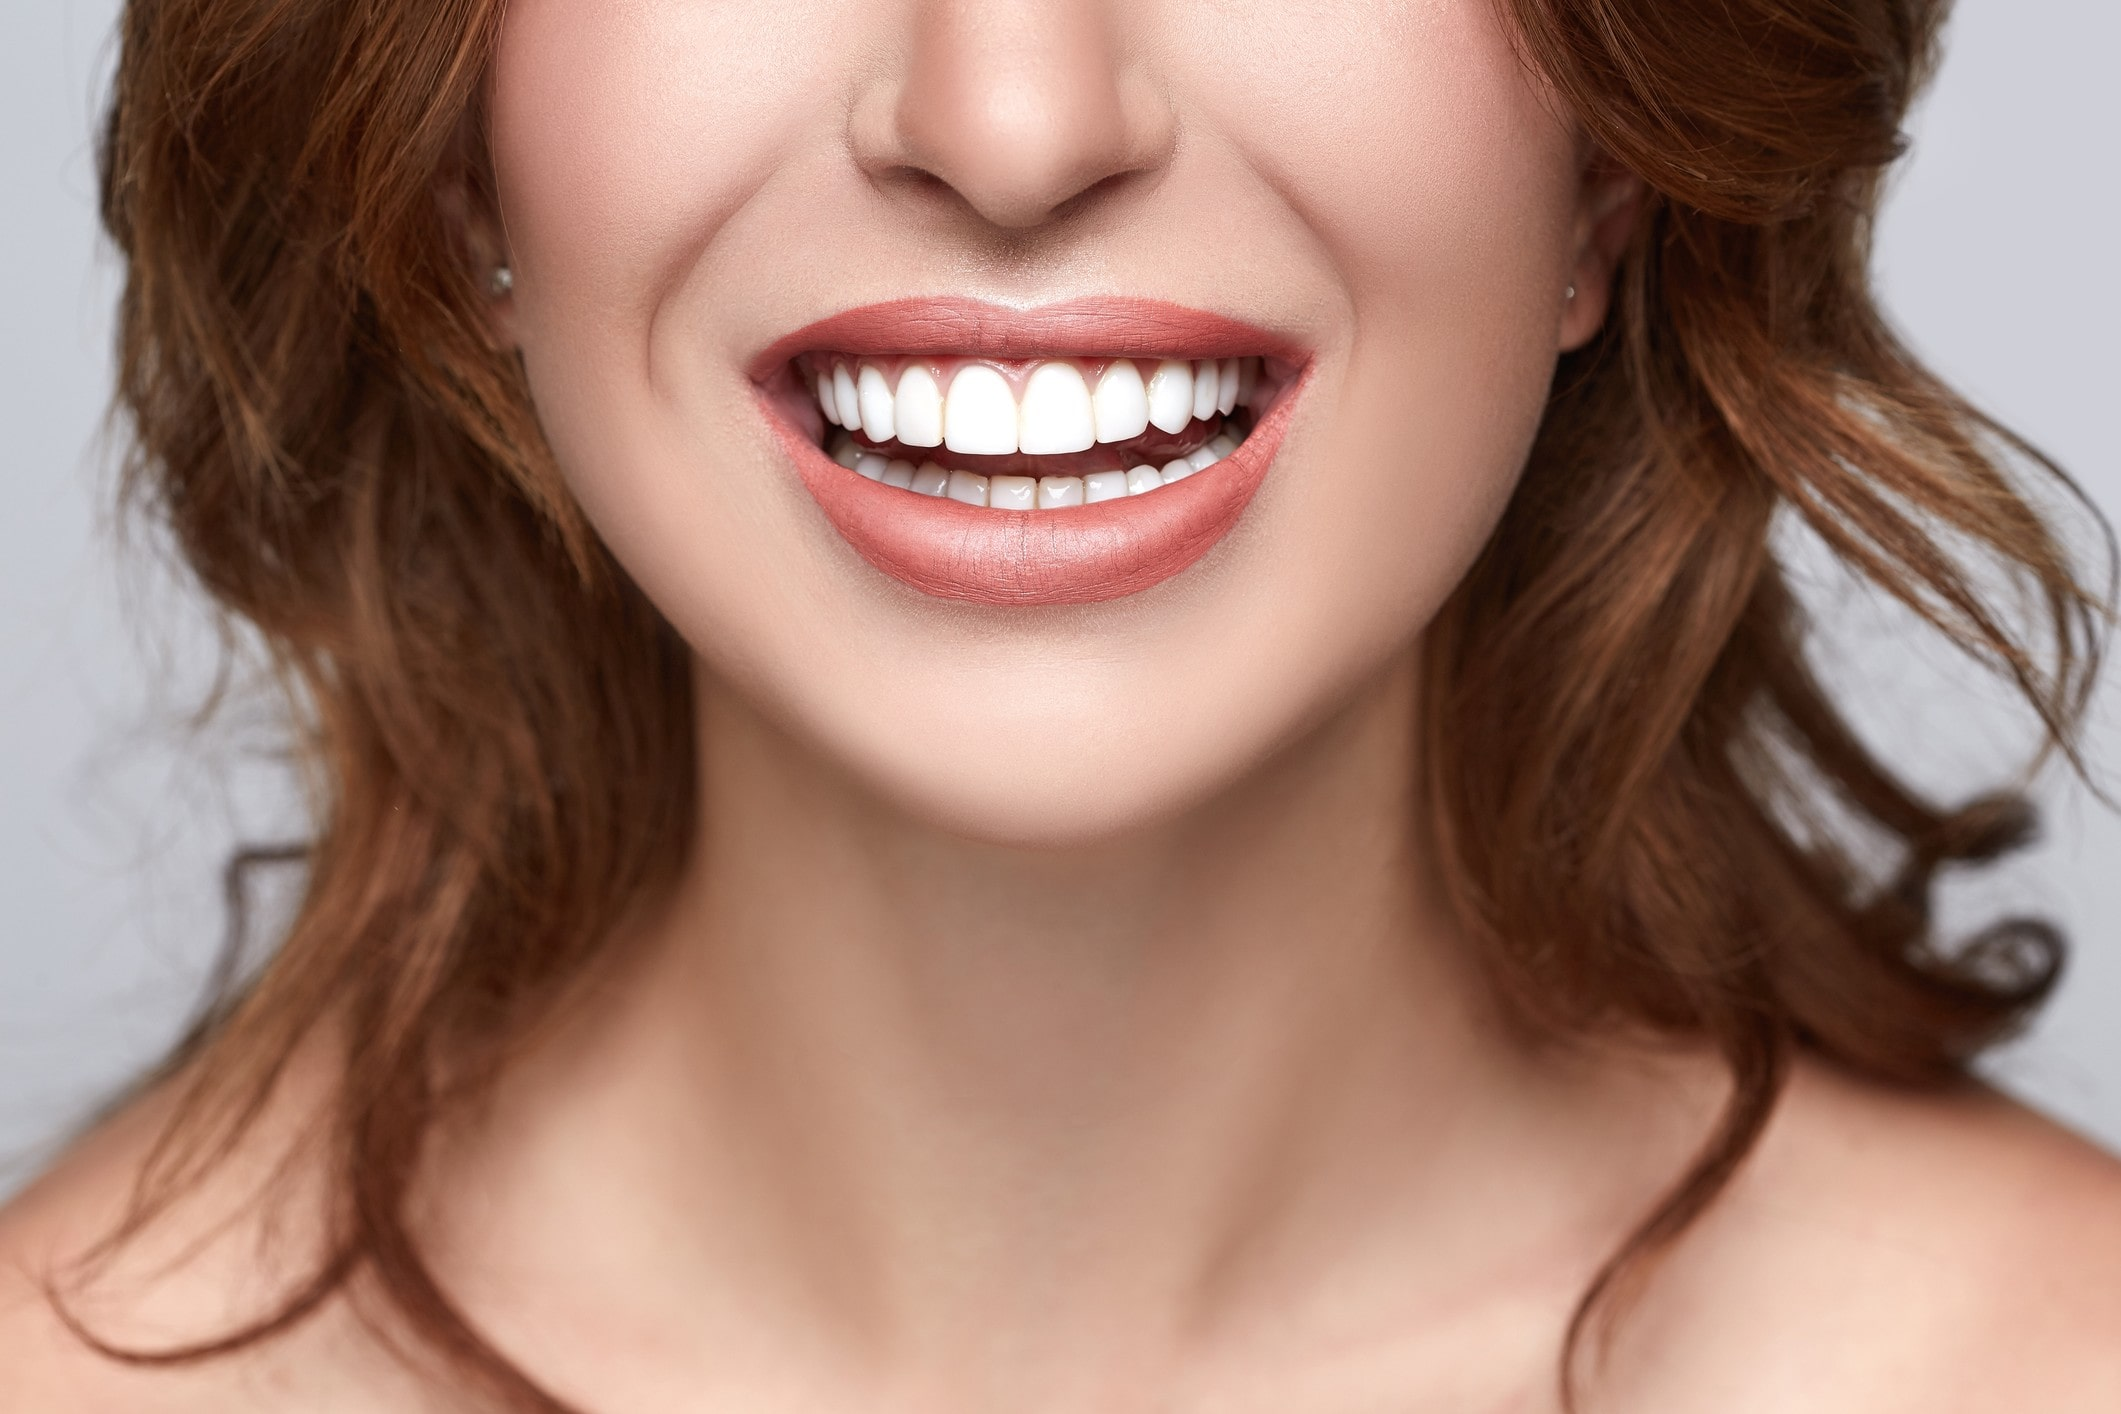 Teeth Whitening 7 Ways To Naturally Remove Tooth Discolouration